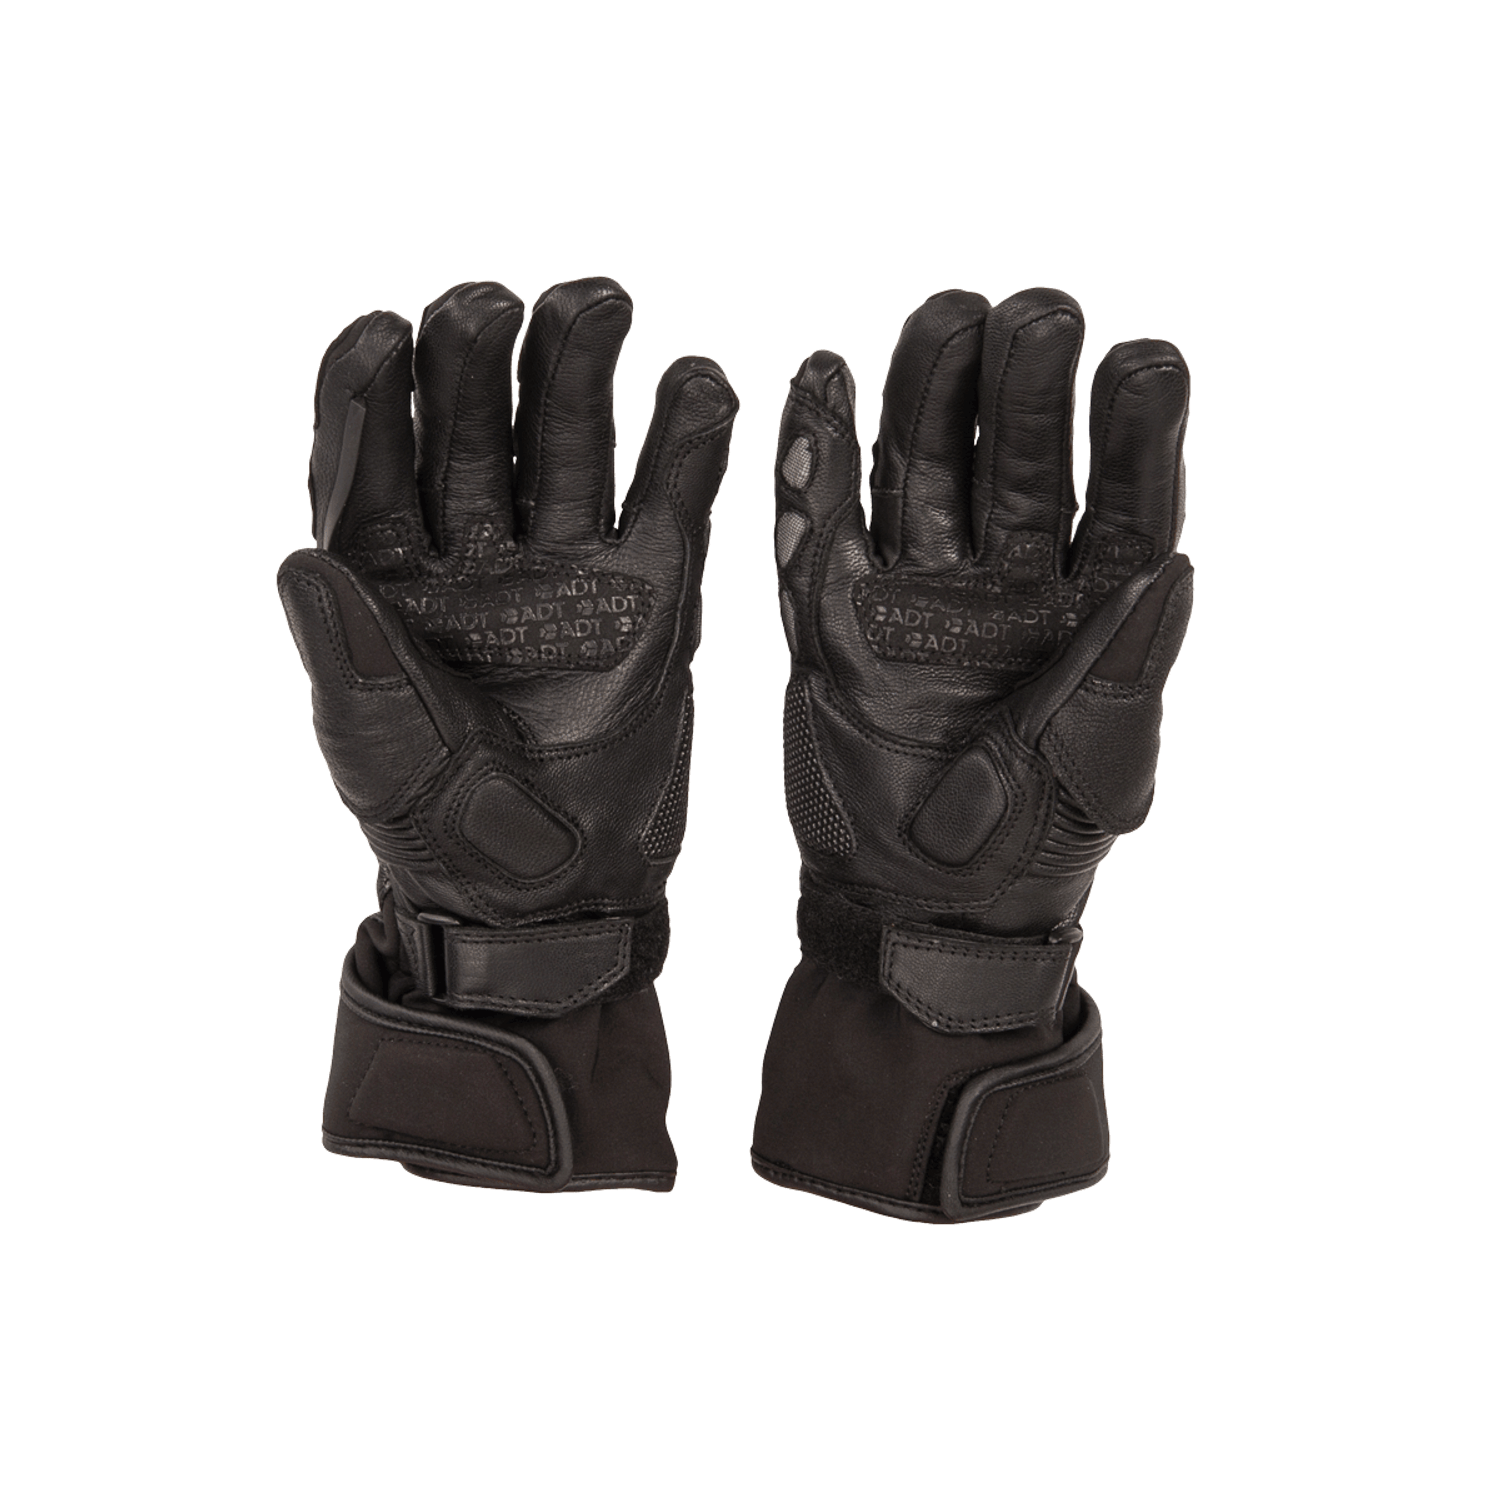 7b244897f8bec GUANTES MUJER WP HYDRA Ref GUAV - Bosi Colombia